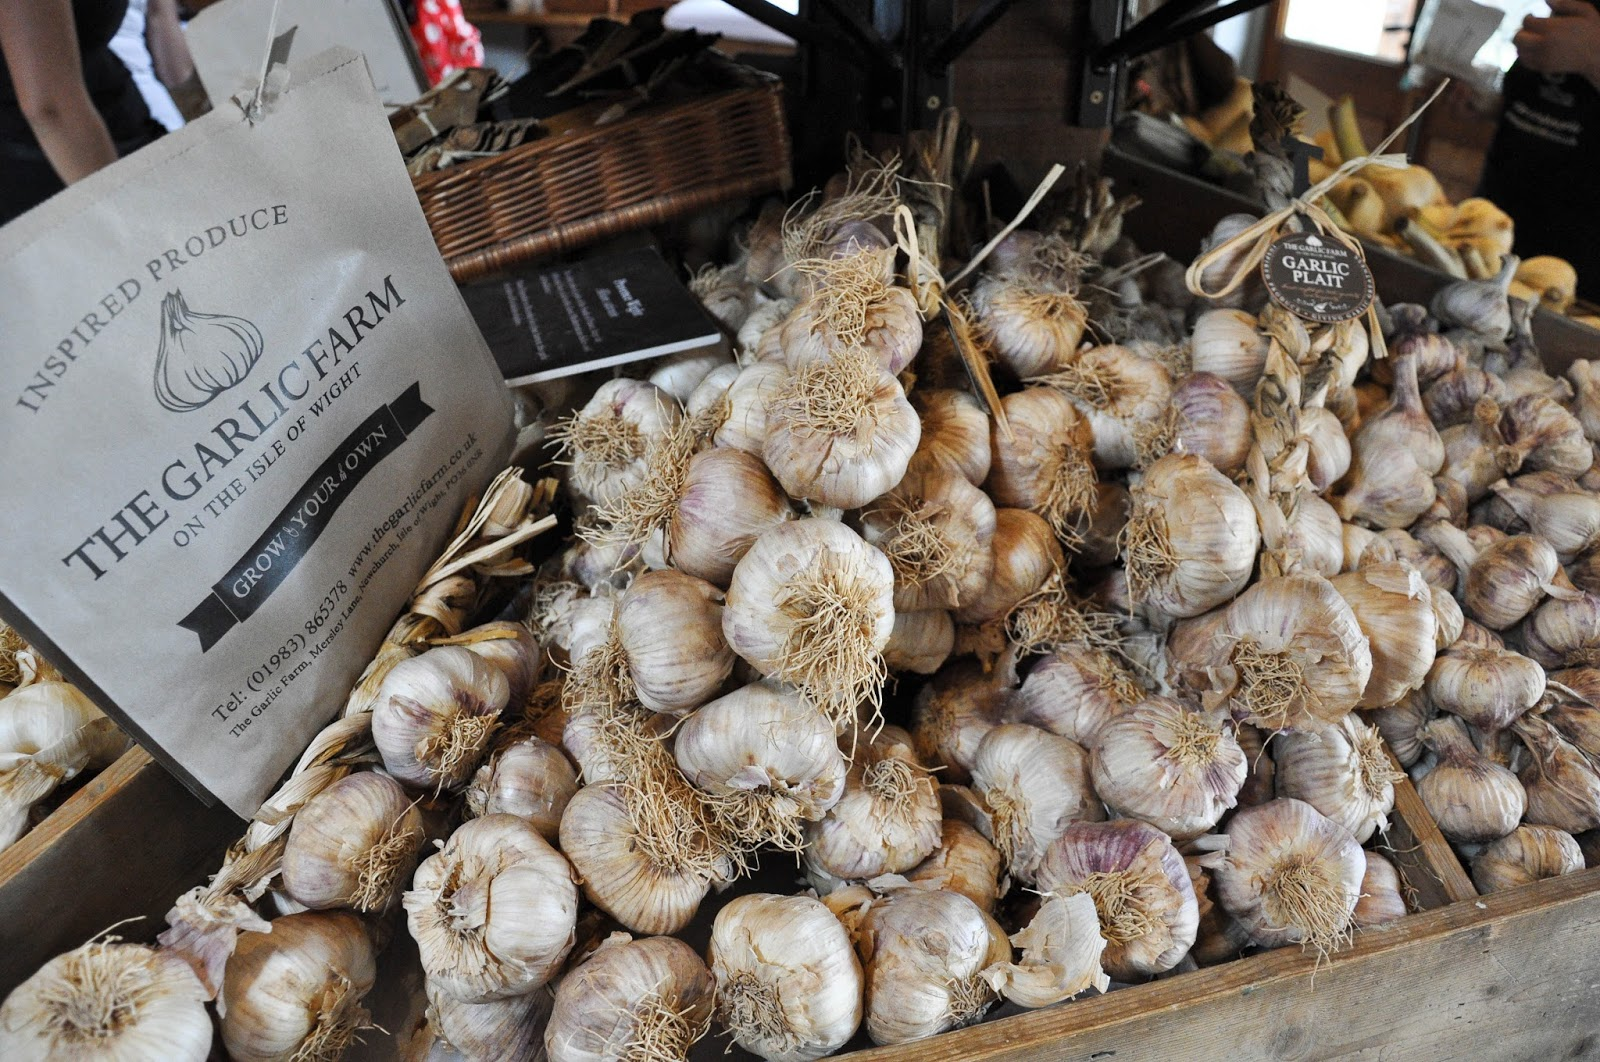 Shopping for garlic, The Garlic Farm, Isle of Wight, UK